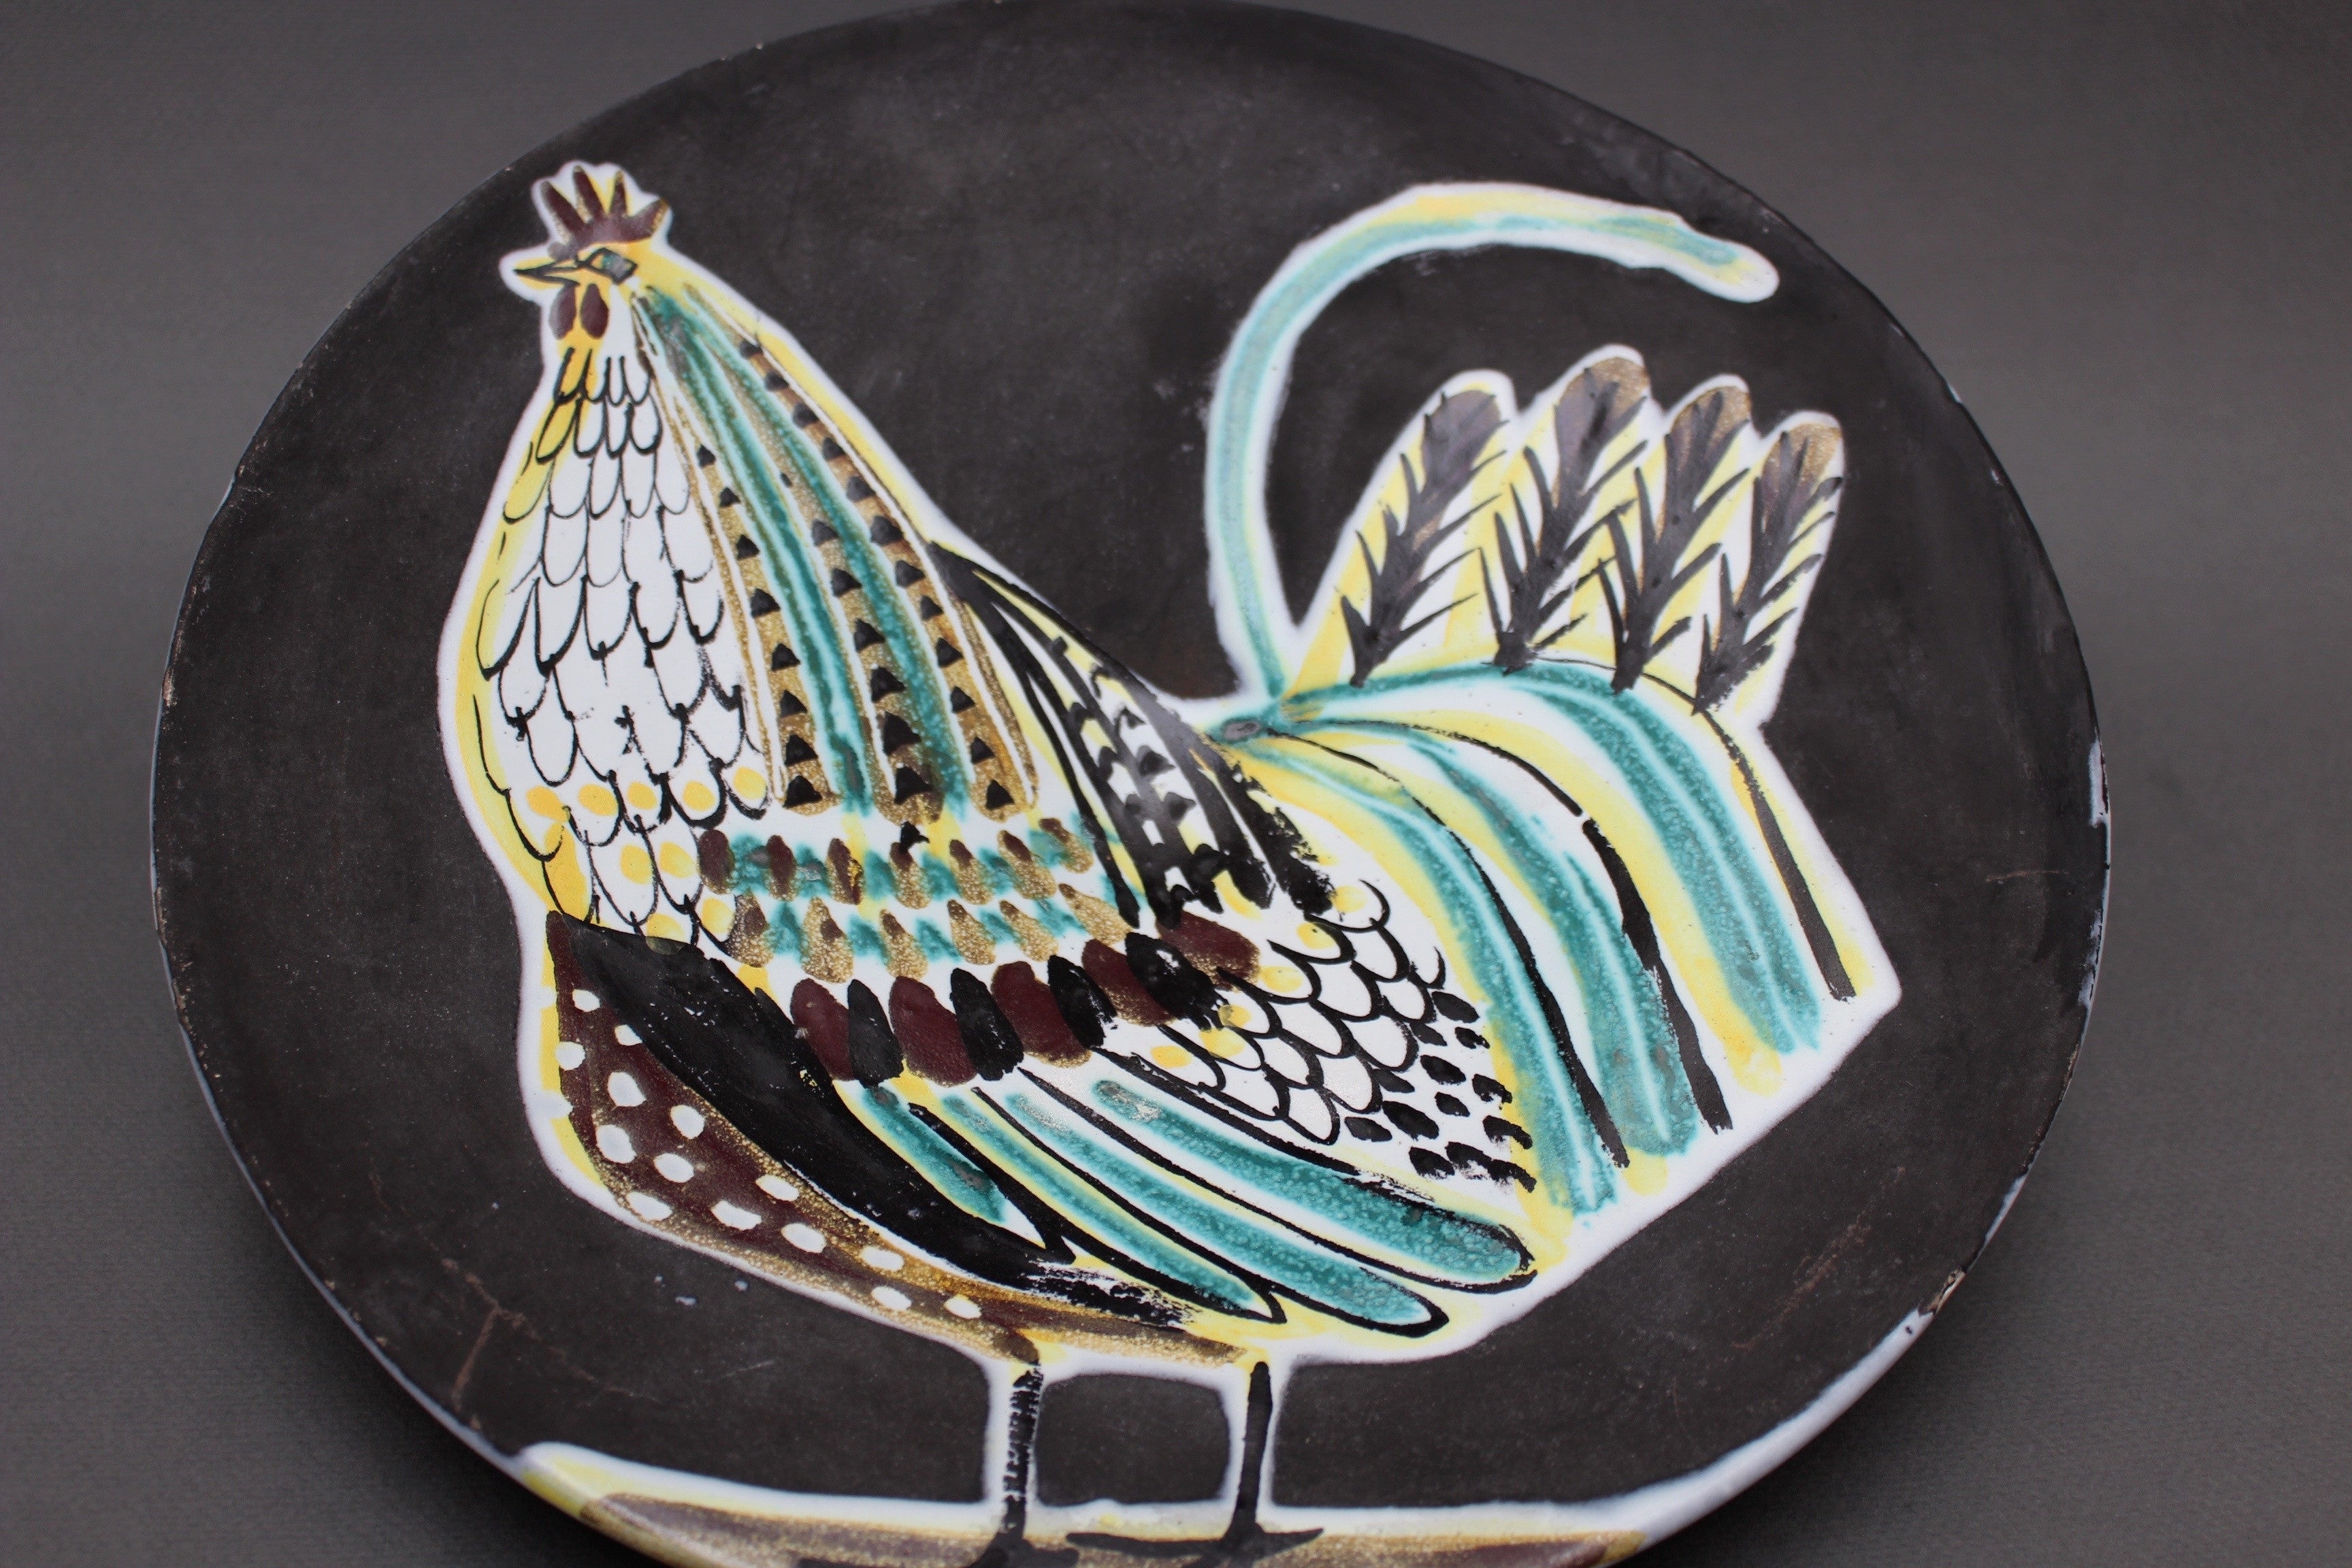 Rare Large Black Ceramic Coq Plate by Roger Capron (1950s)